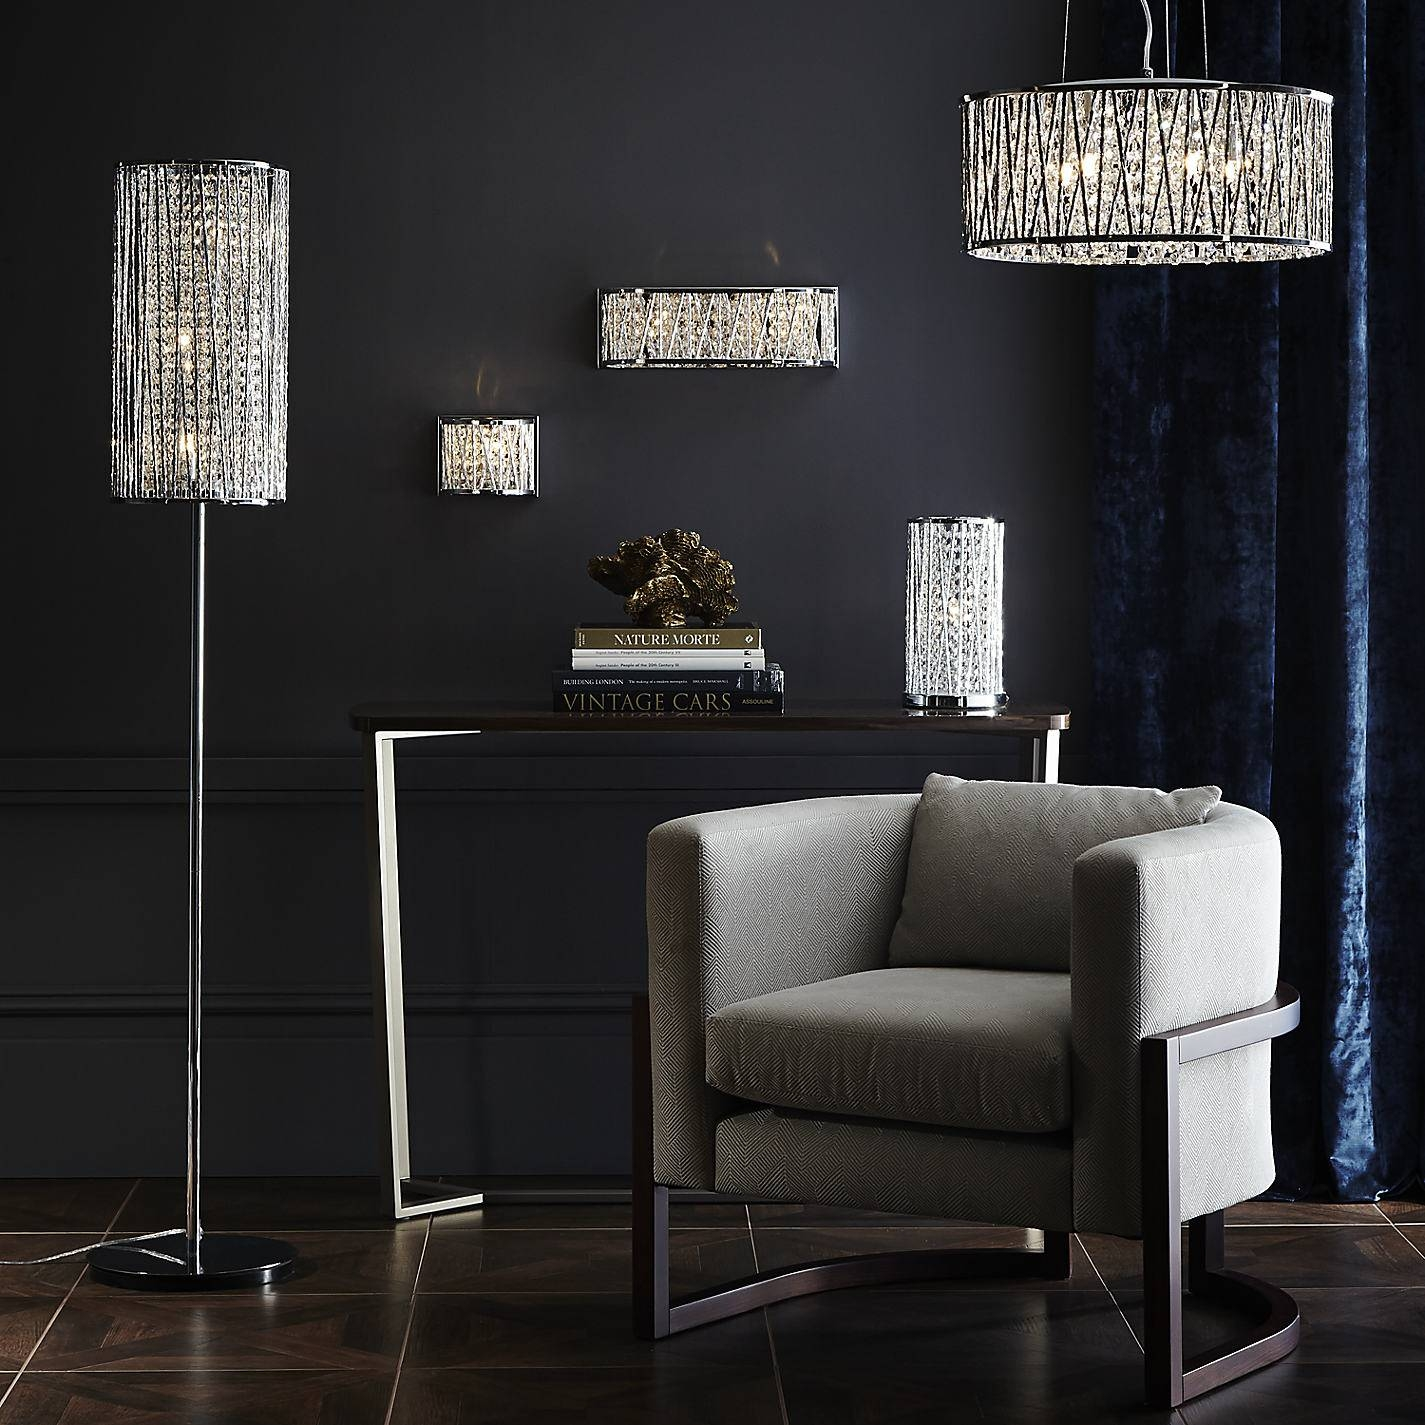 Lights: Cheap Chandelier Floor Lamp | Chrome Arc Lamp | Crystal within John Lewis Pendant Light Shades (Image 12 of 15)